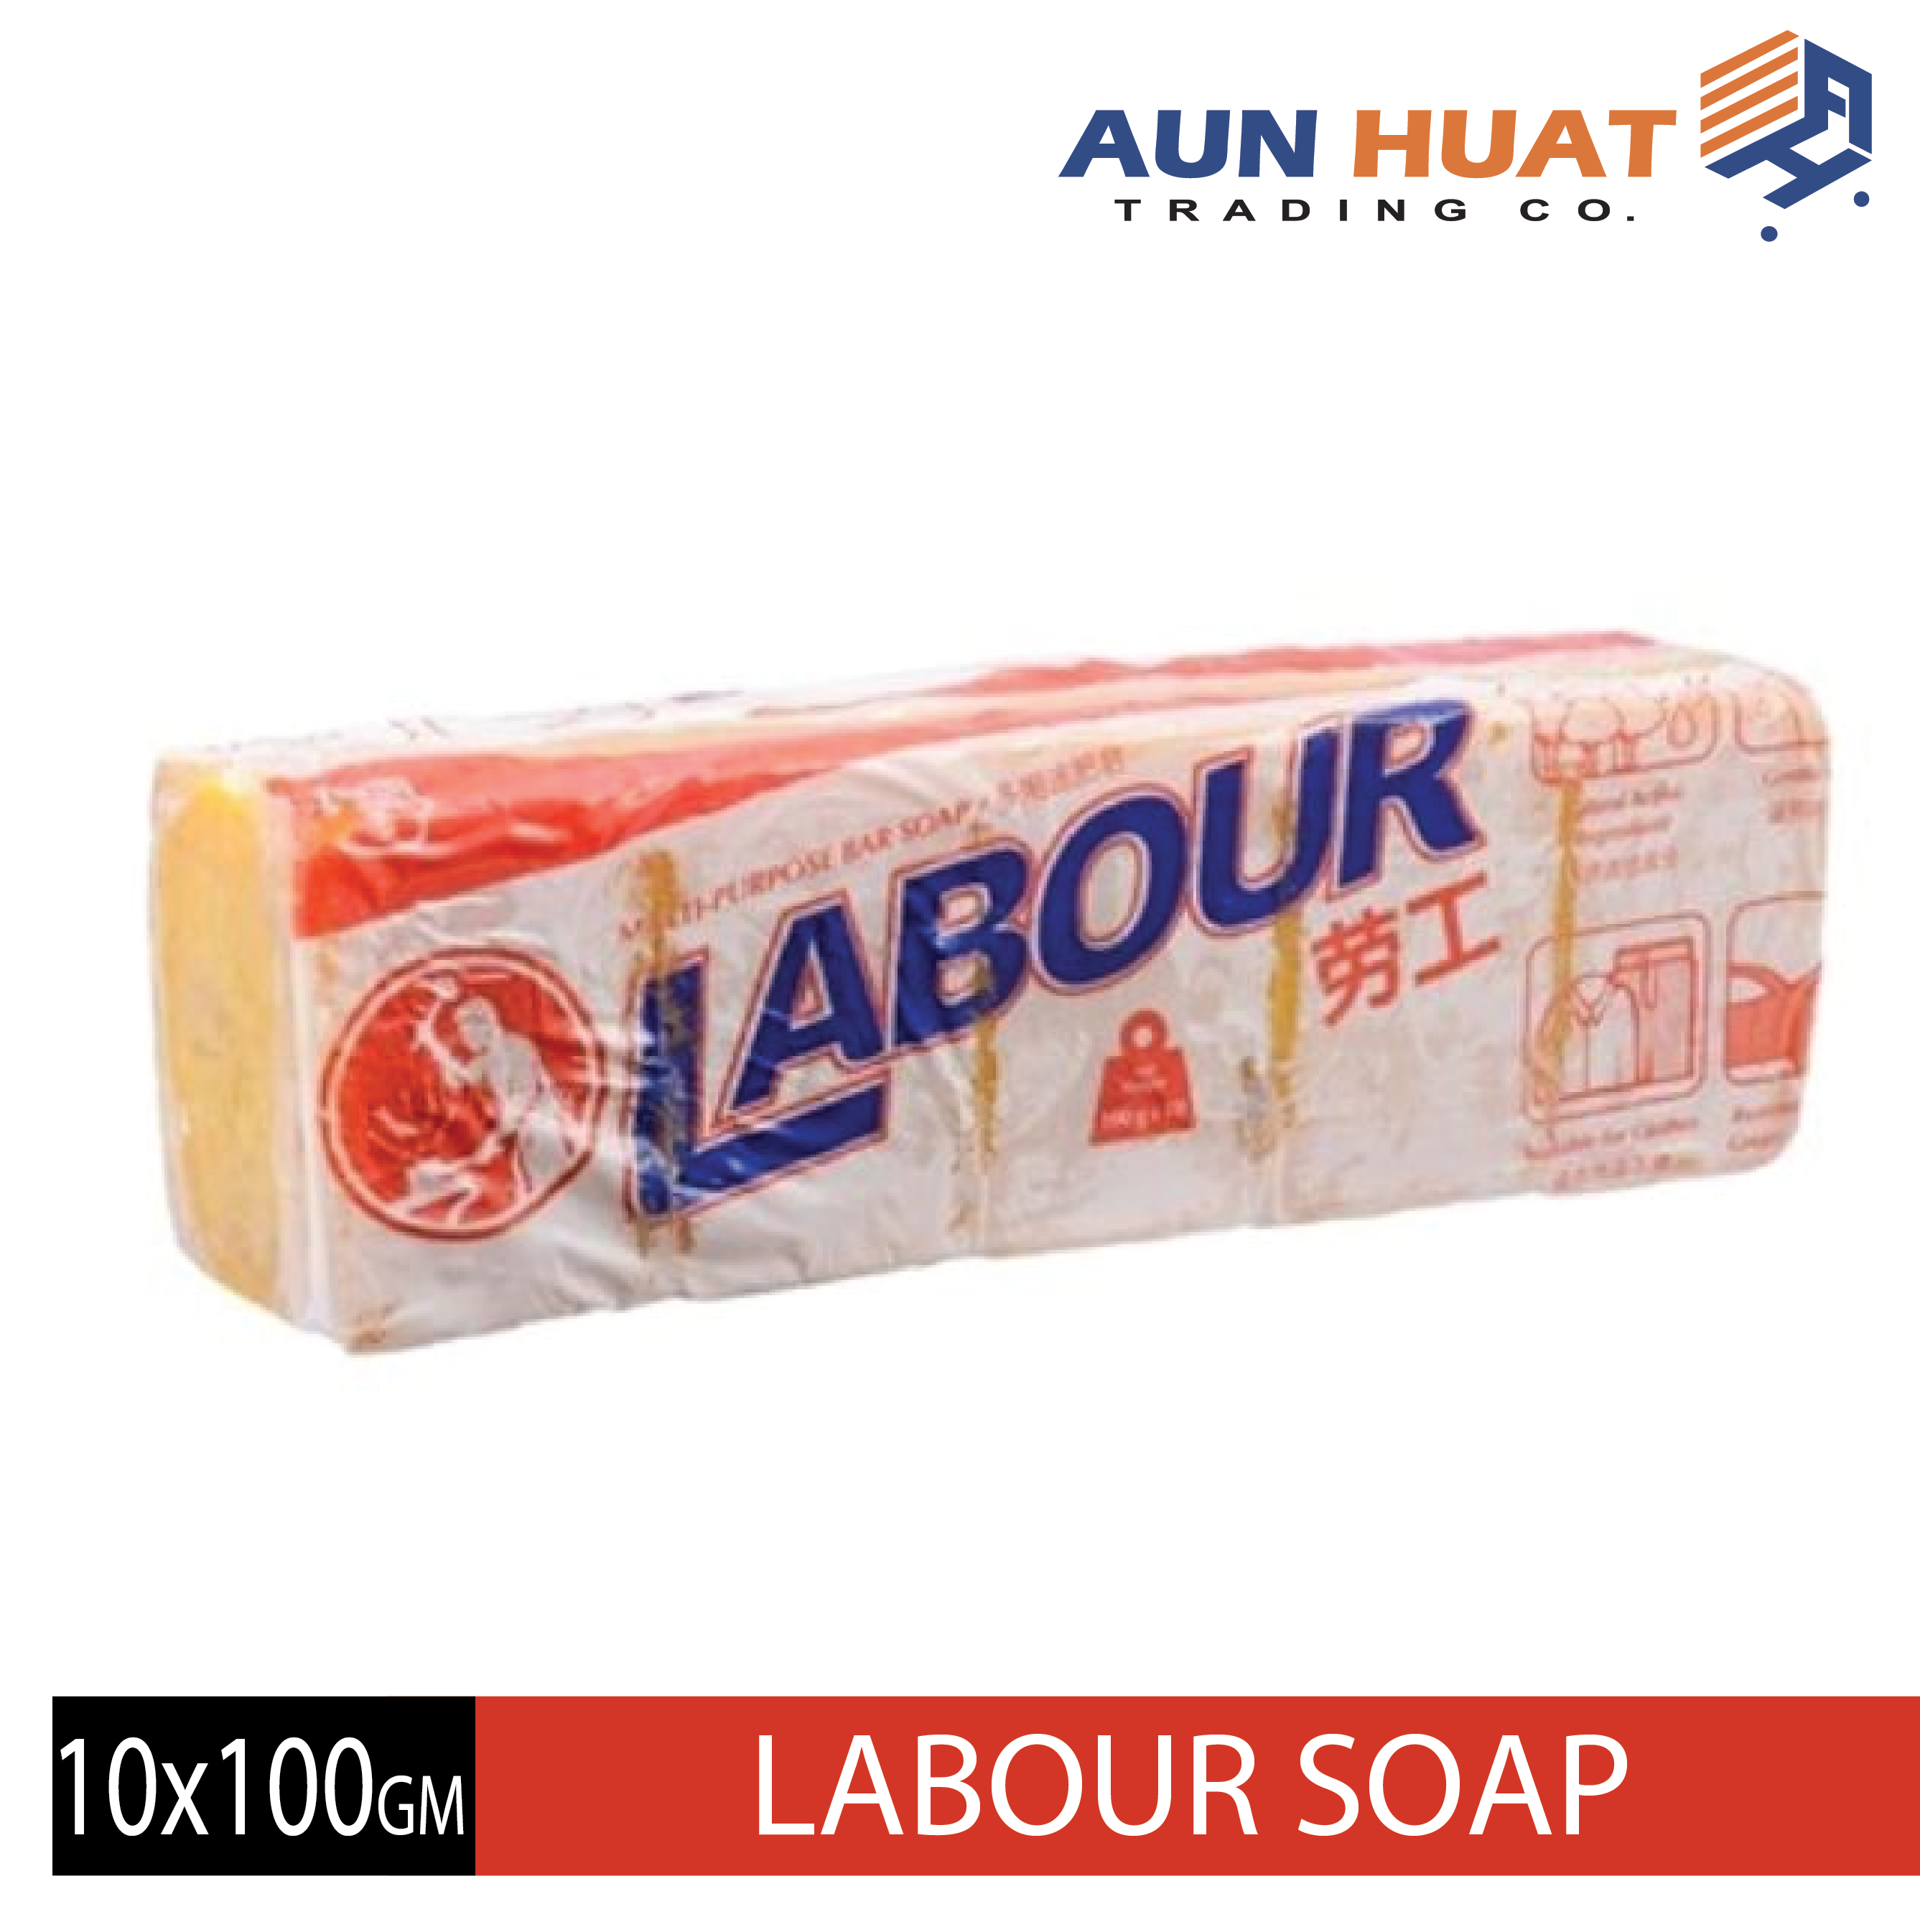 Labour Soap 10x100gm